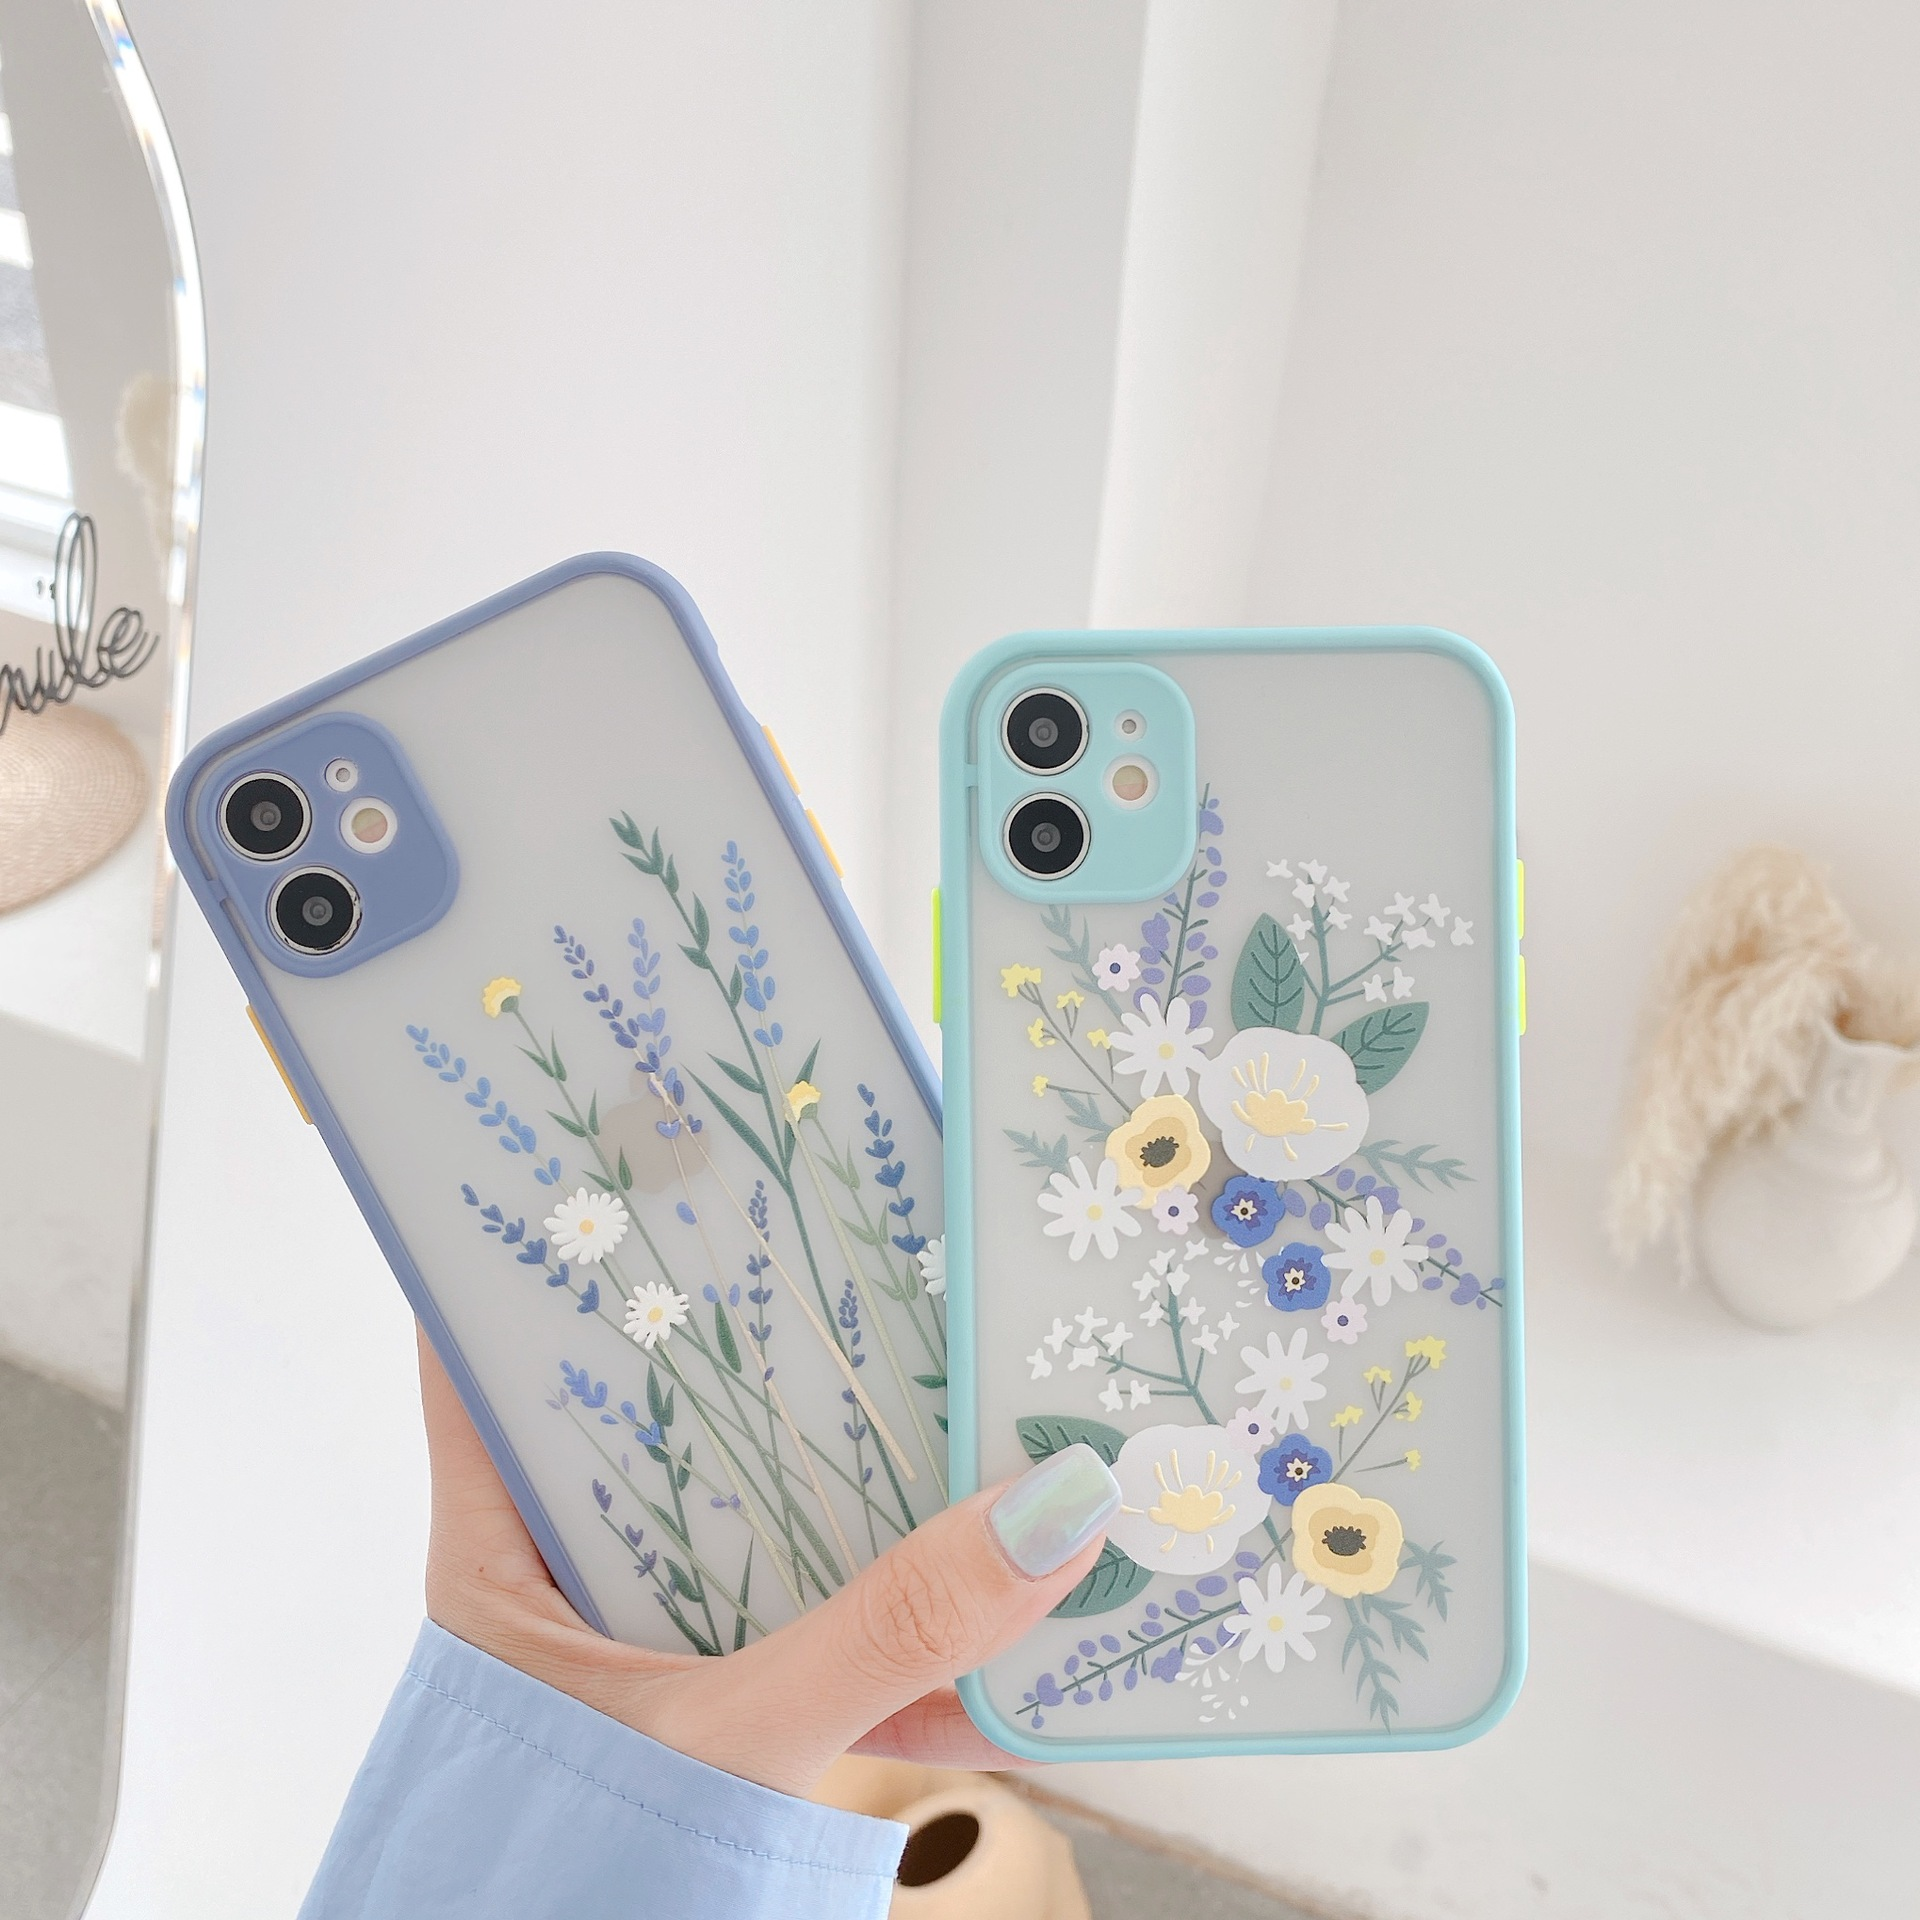 Luxury Flower Case For iPhone 12 Mini 11 Pro Max X XR XS Max 7 8 Plus 3D Relief Floral Transparent Soft TPU Back Cover